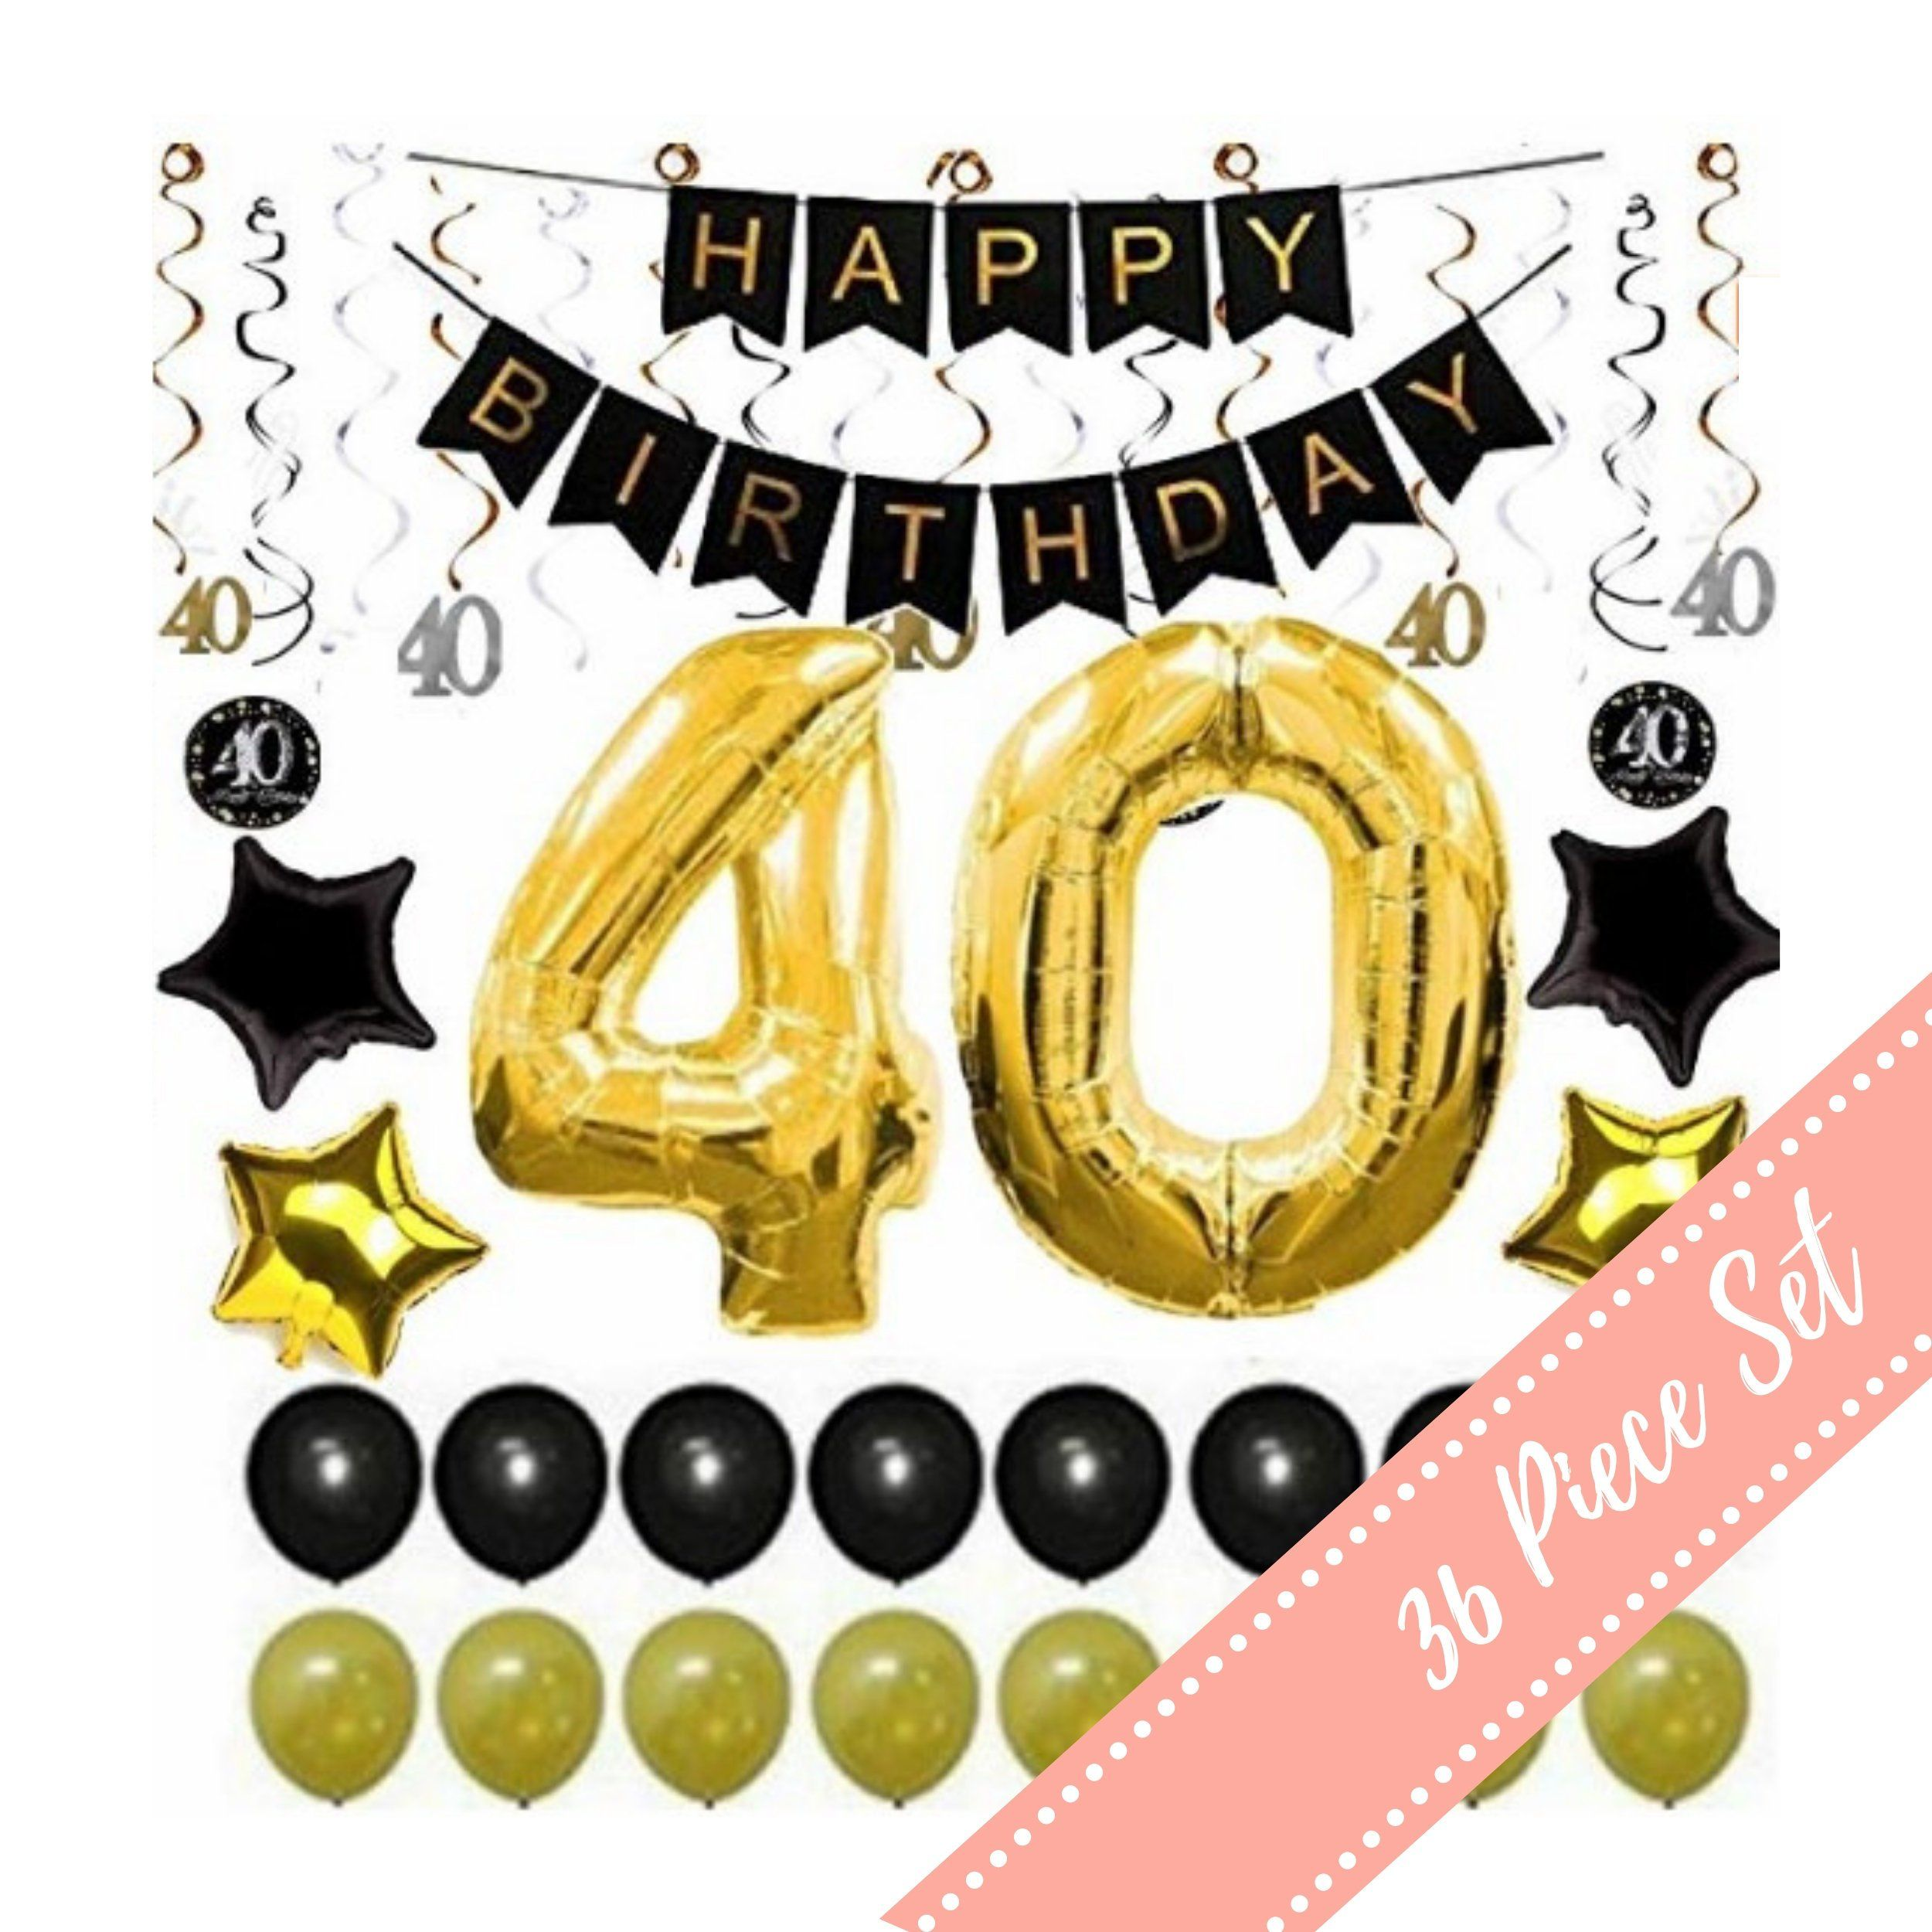 40th birthday decorations for men woman him her balloons